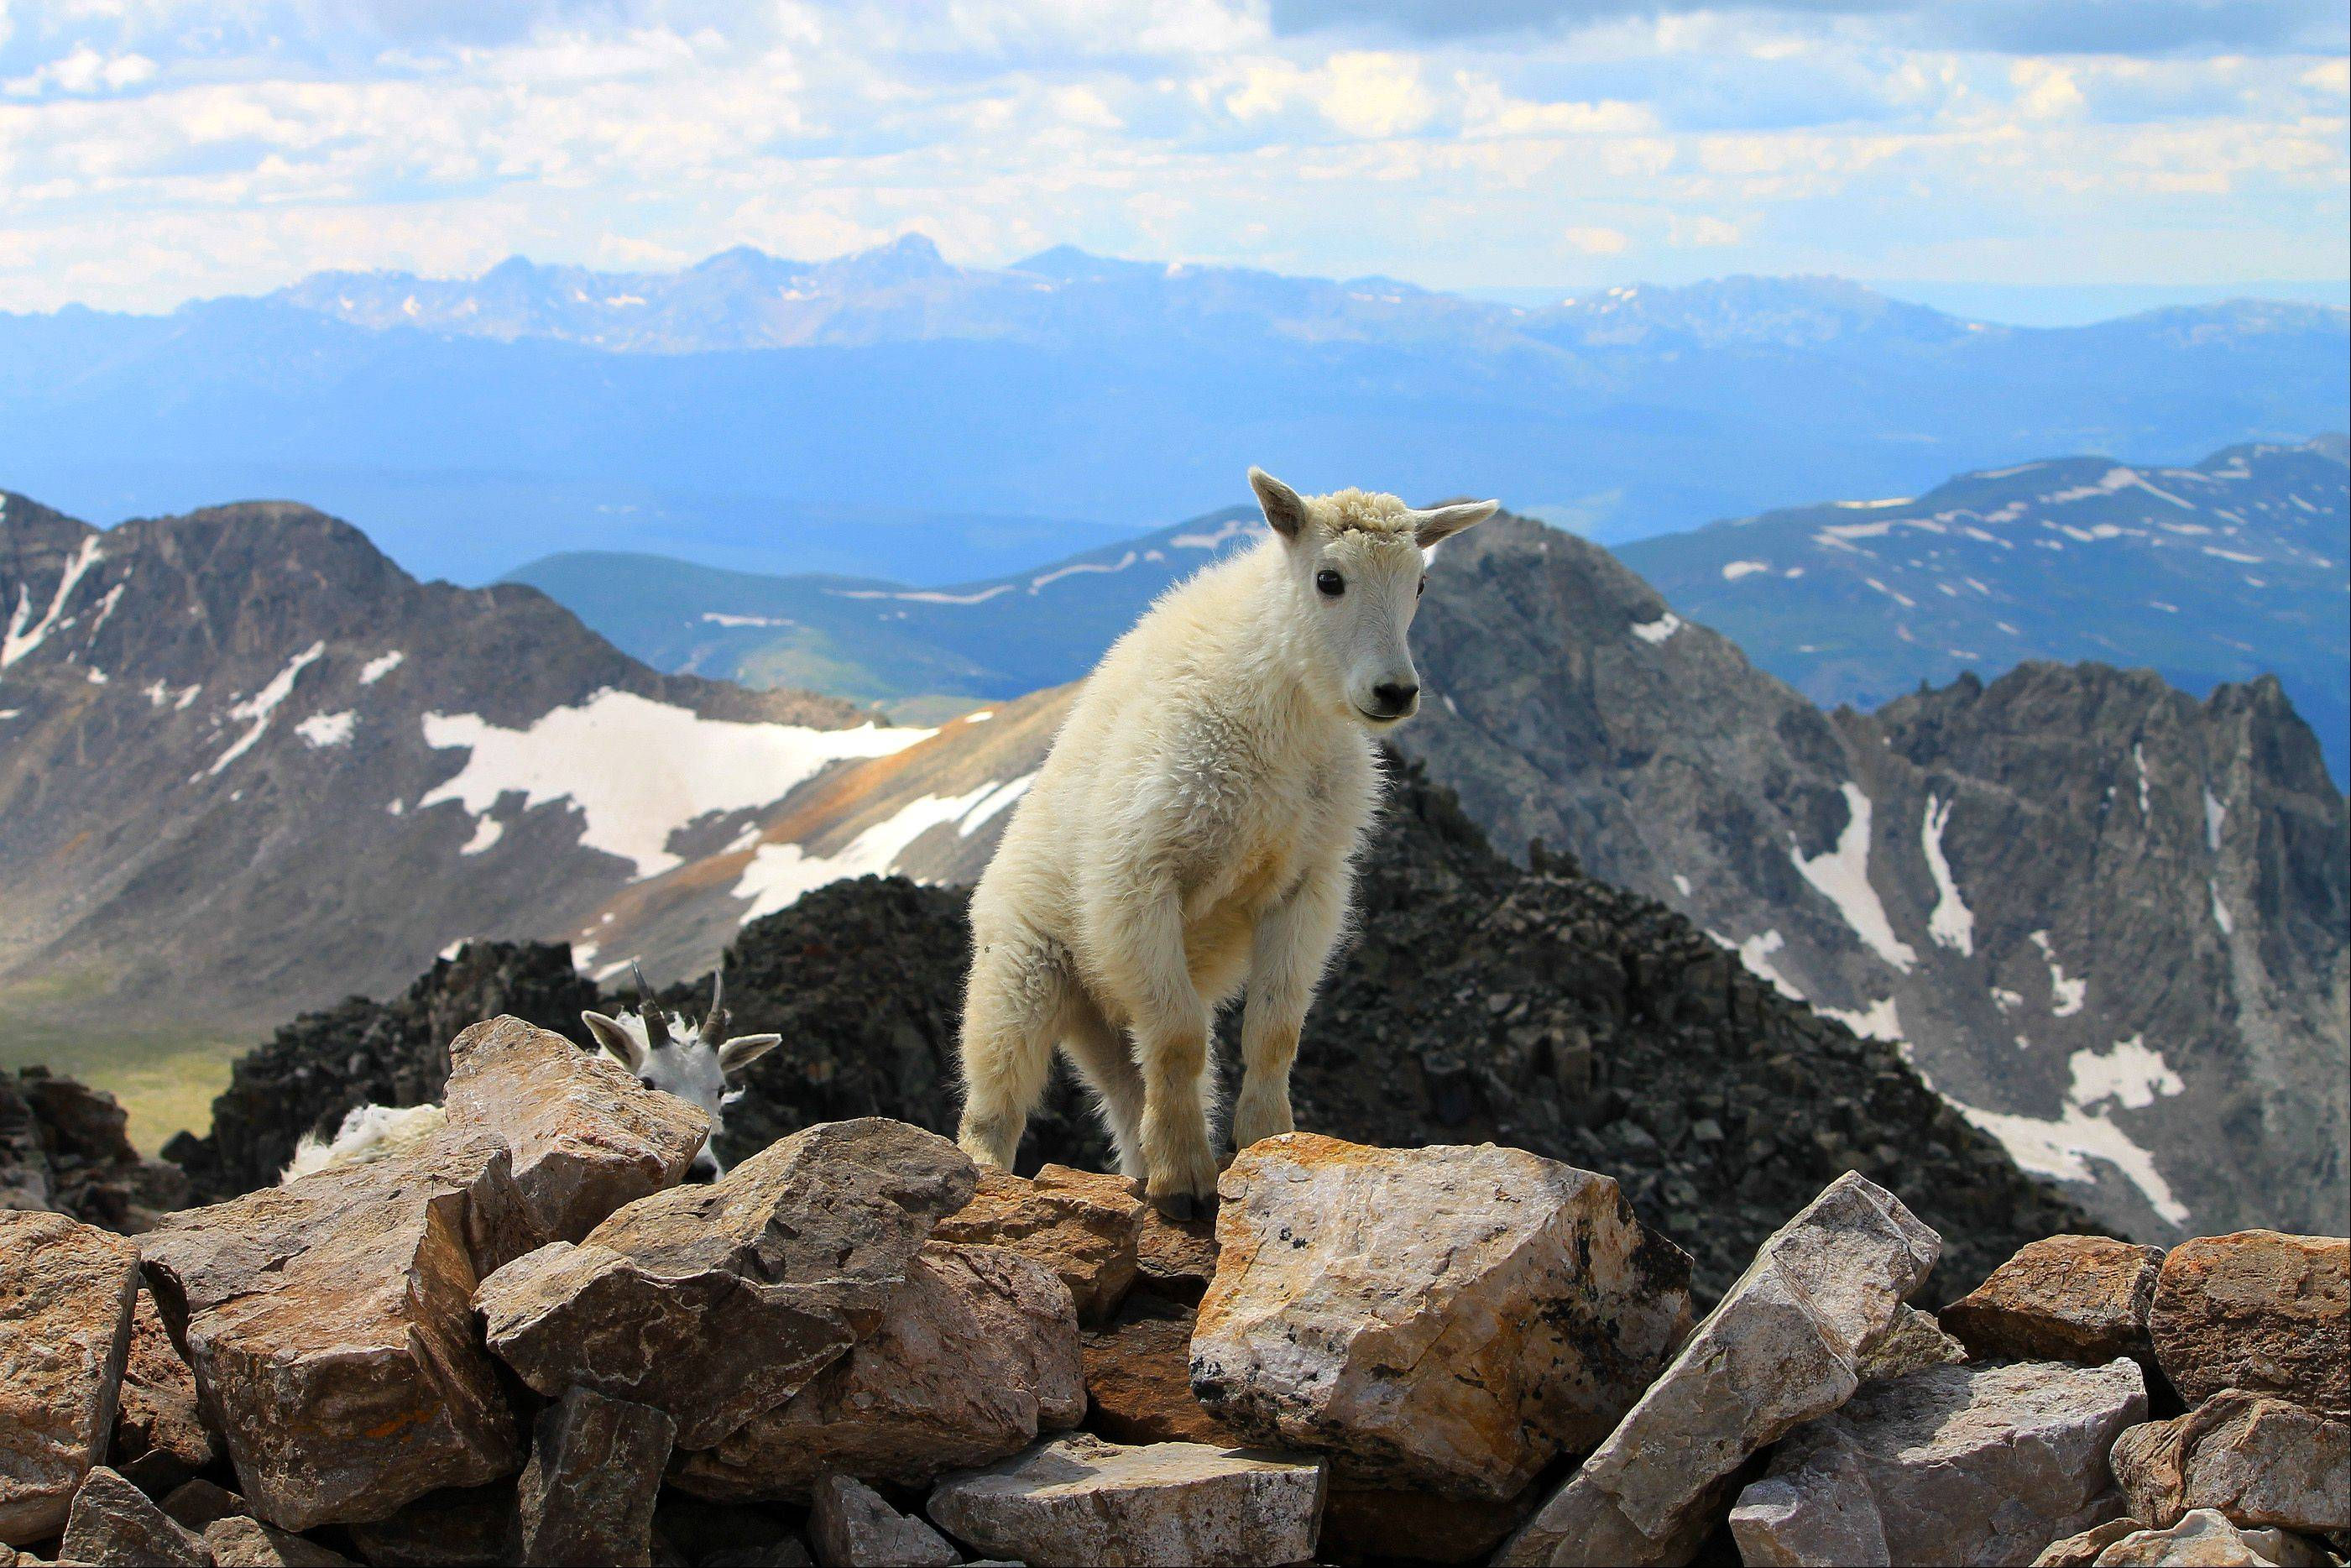 This picture was taken on the top of Mount Quandary near Breckenridge, CO. During a hiking trip, we decided to climb to the top of the mountain, which is the 13th highest mountain in Colorado at 14,265 feet. We saw mountain goats at the top and pictured is a baby goat.